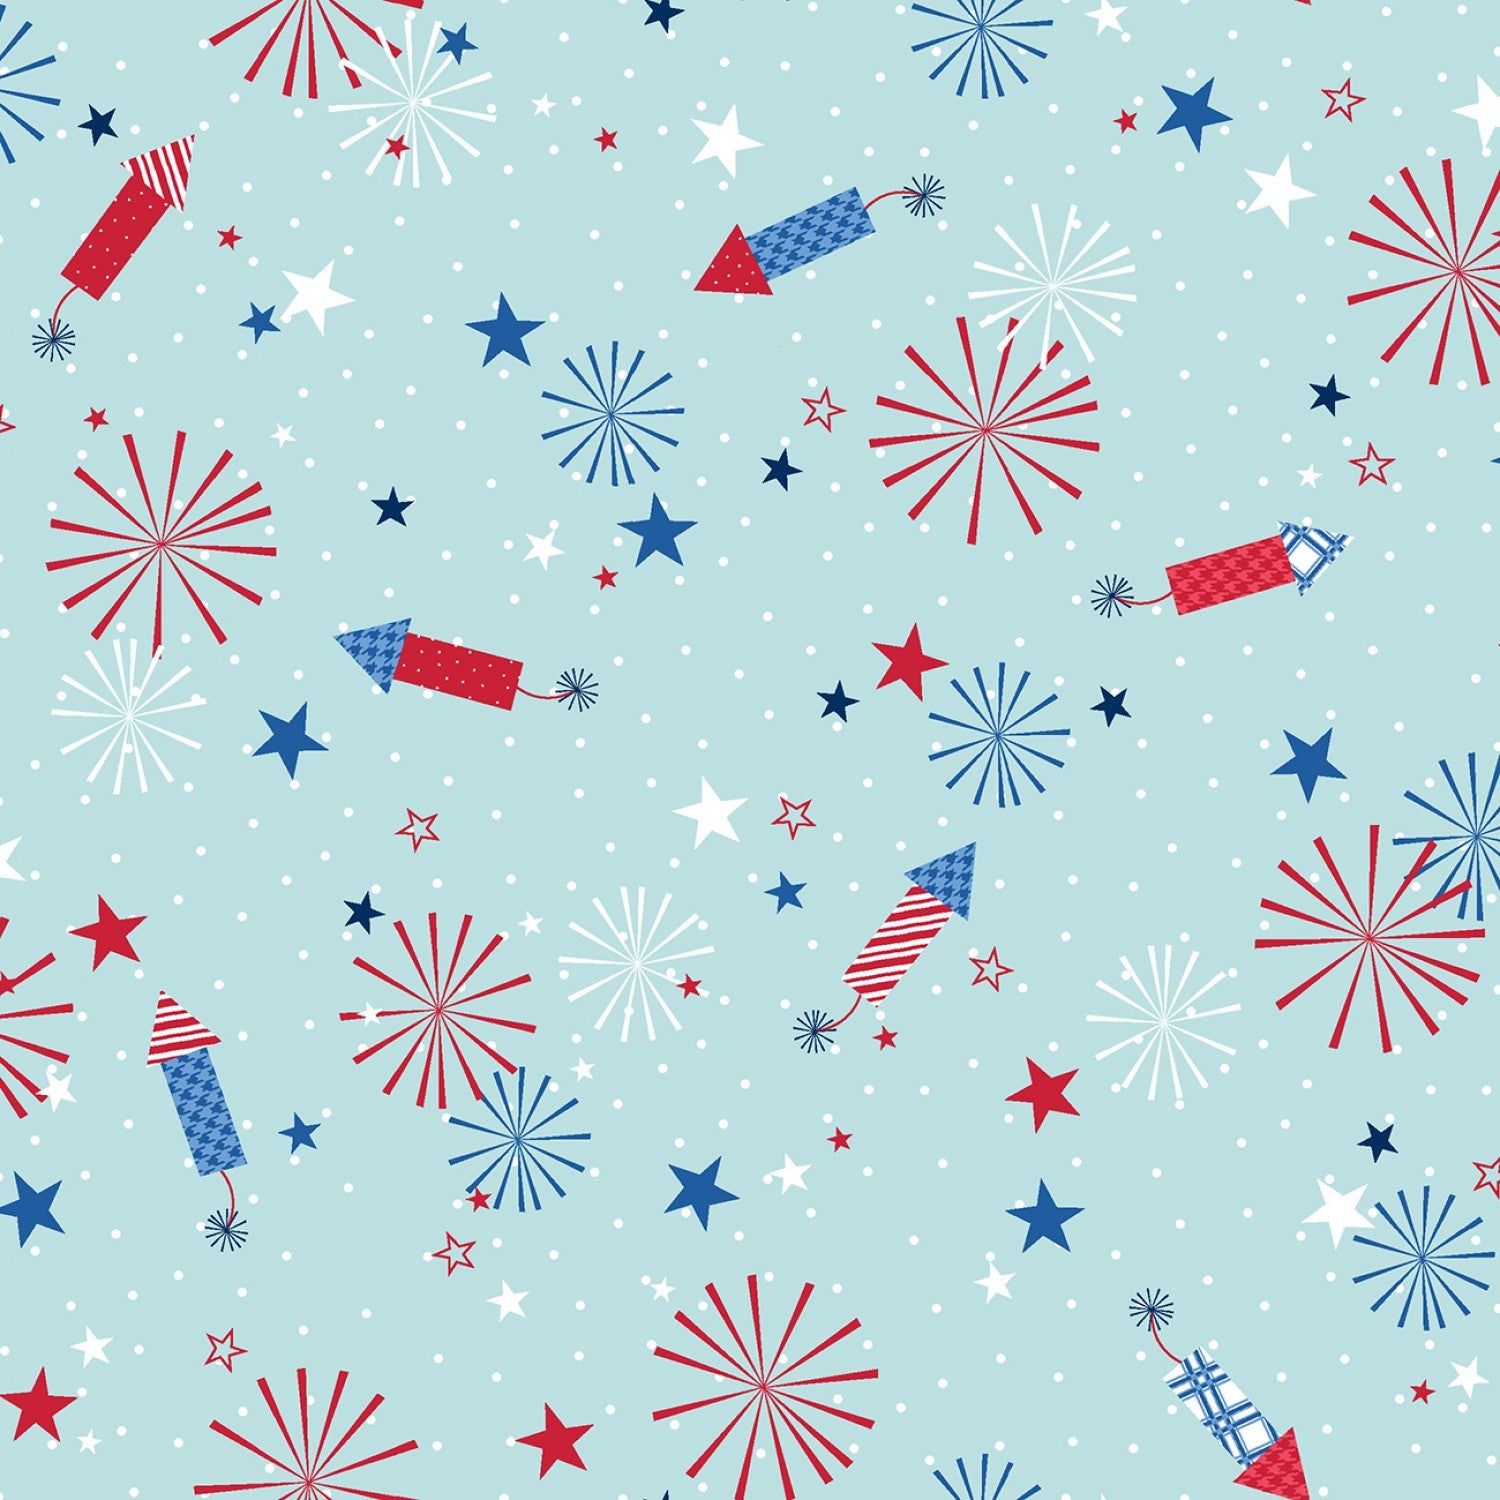 Red, White & Bloom - Aqua Fireworks